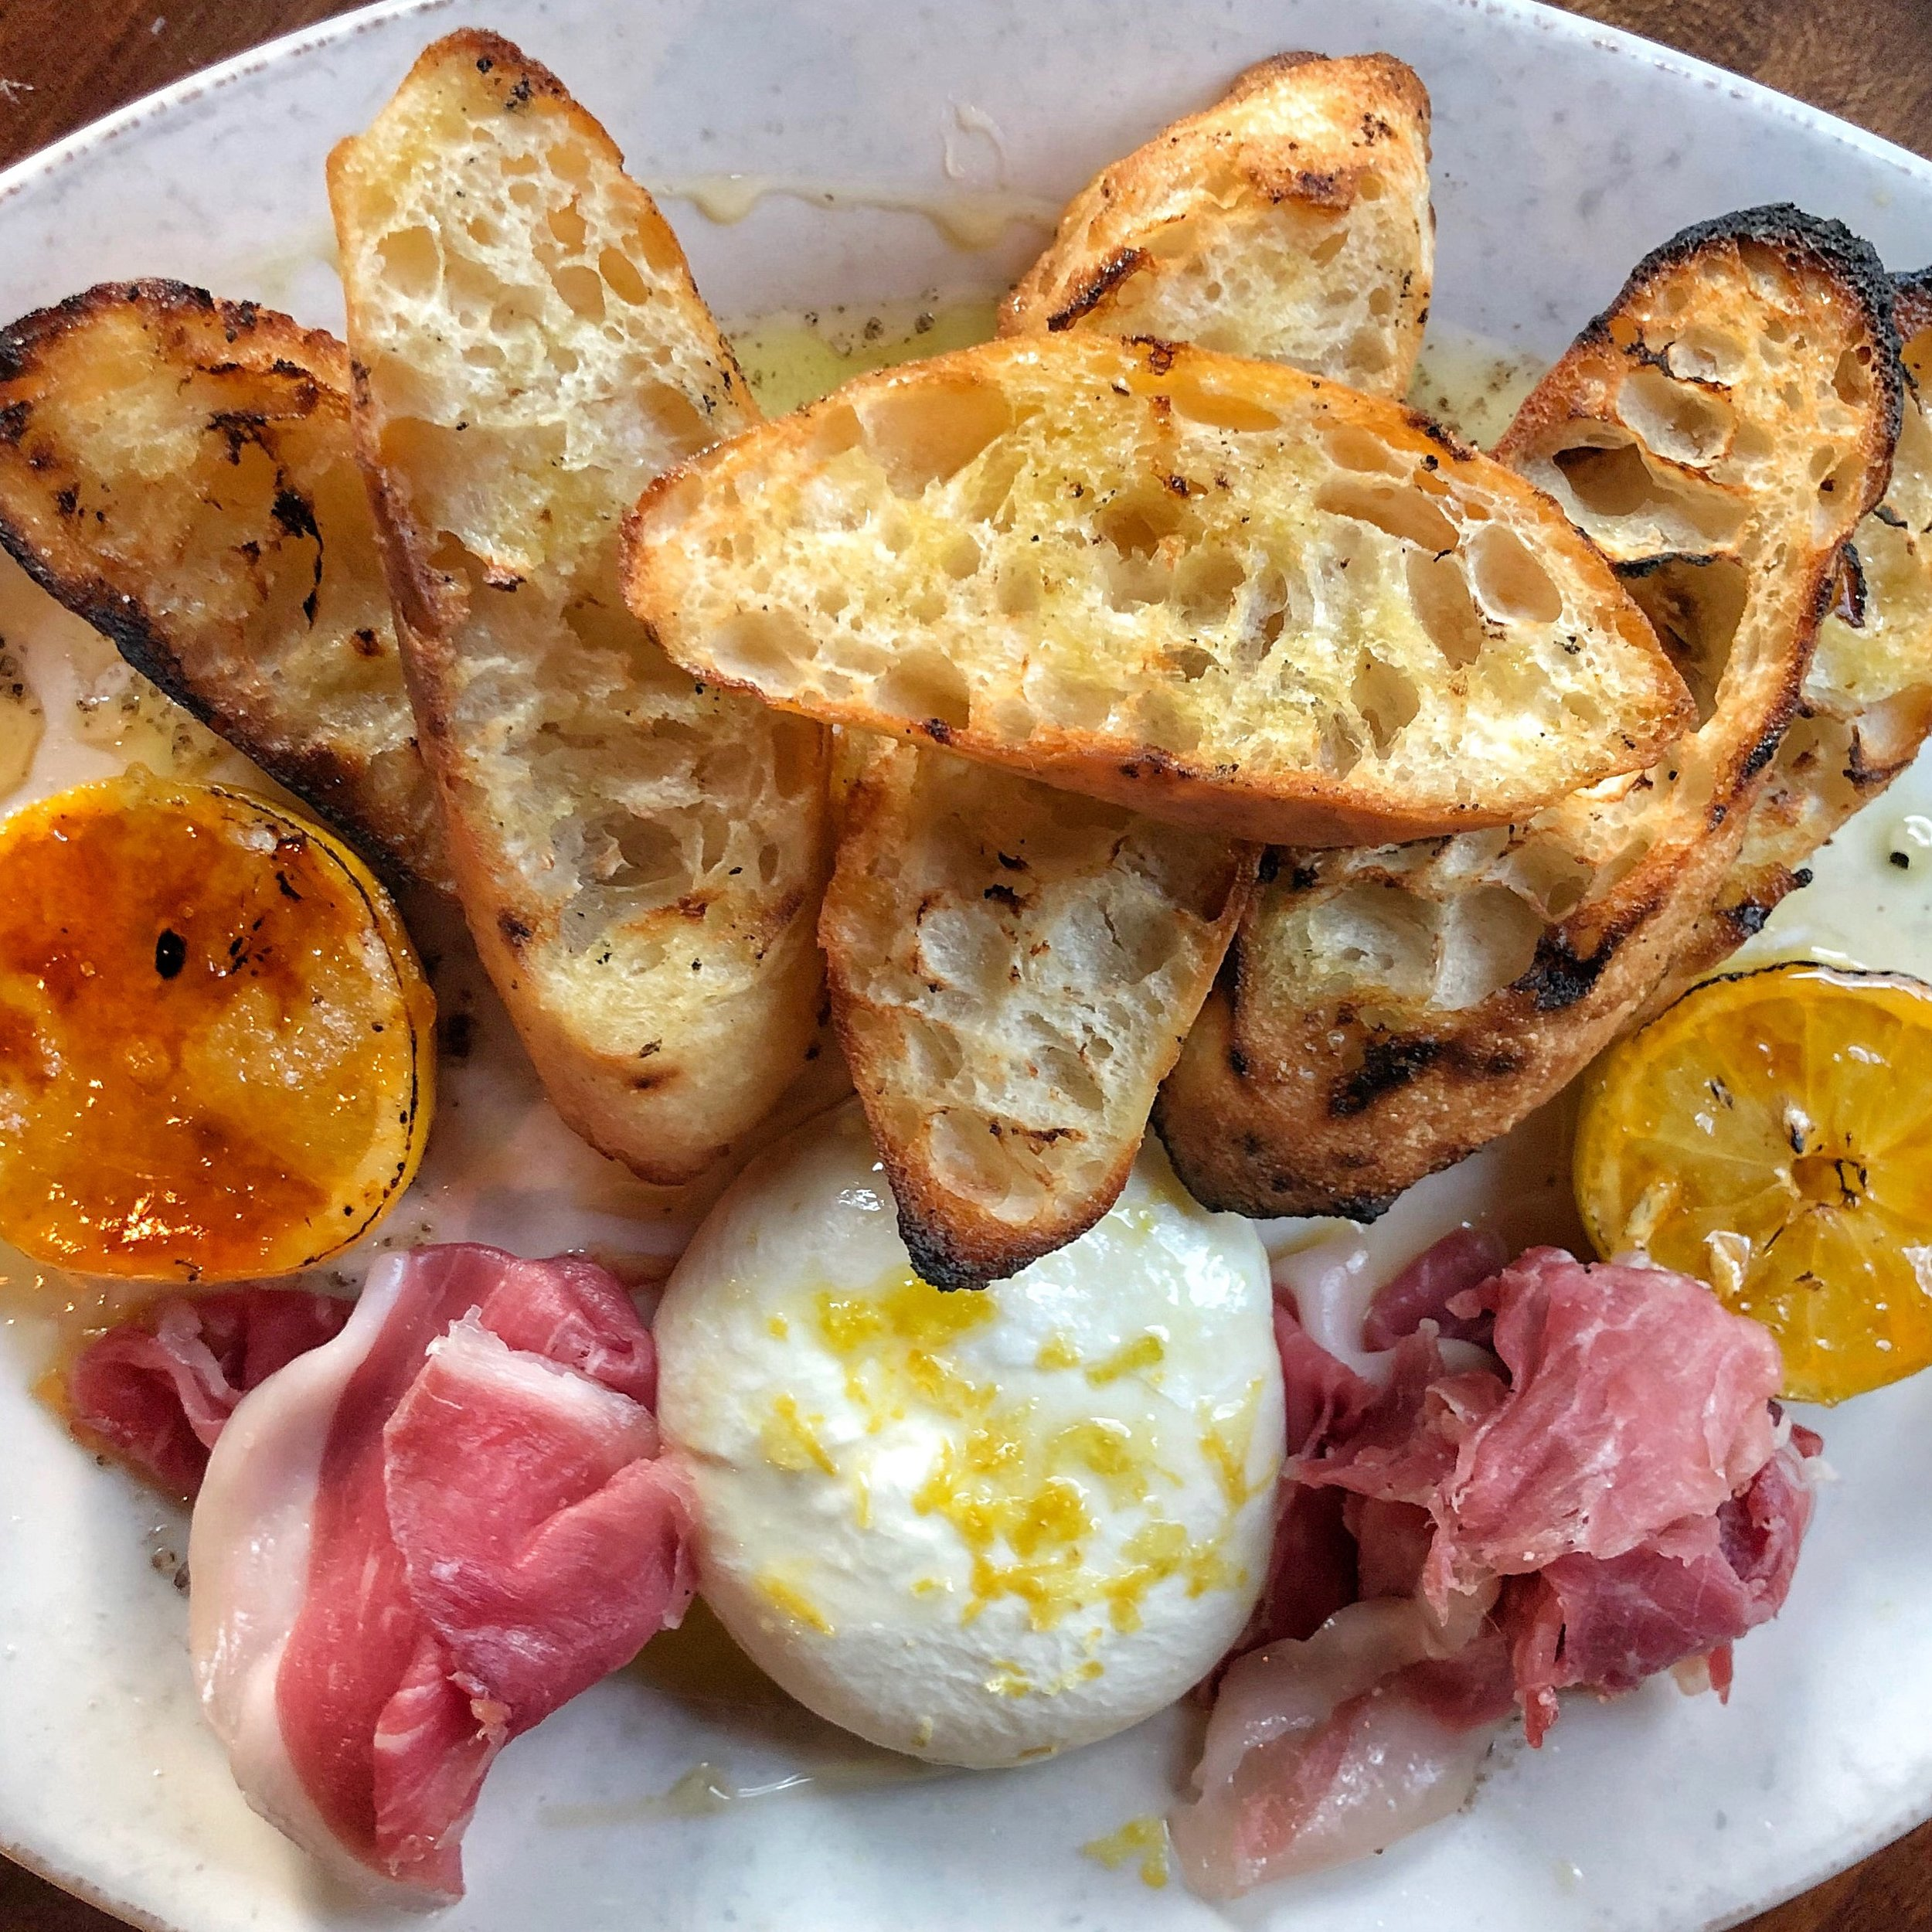 Burrata - housemade burrata with olive oil, smoked salt, brûléed lemon, lemon zest & grilled bread (add proscuitto)